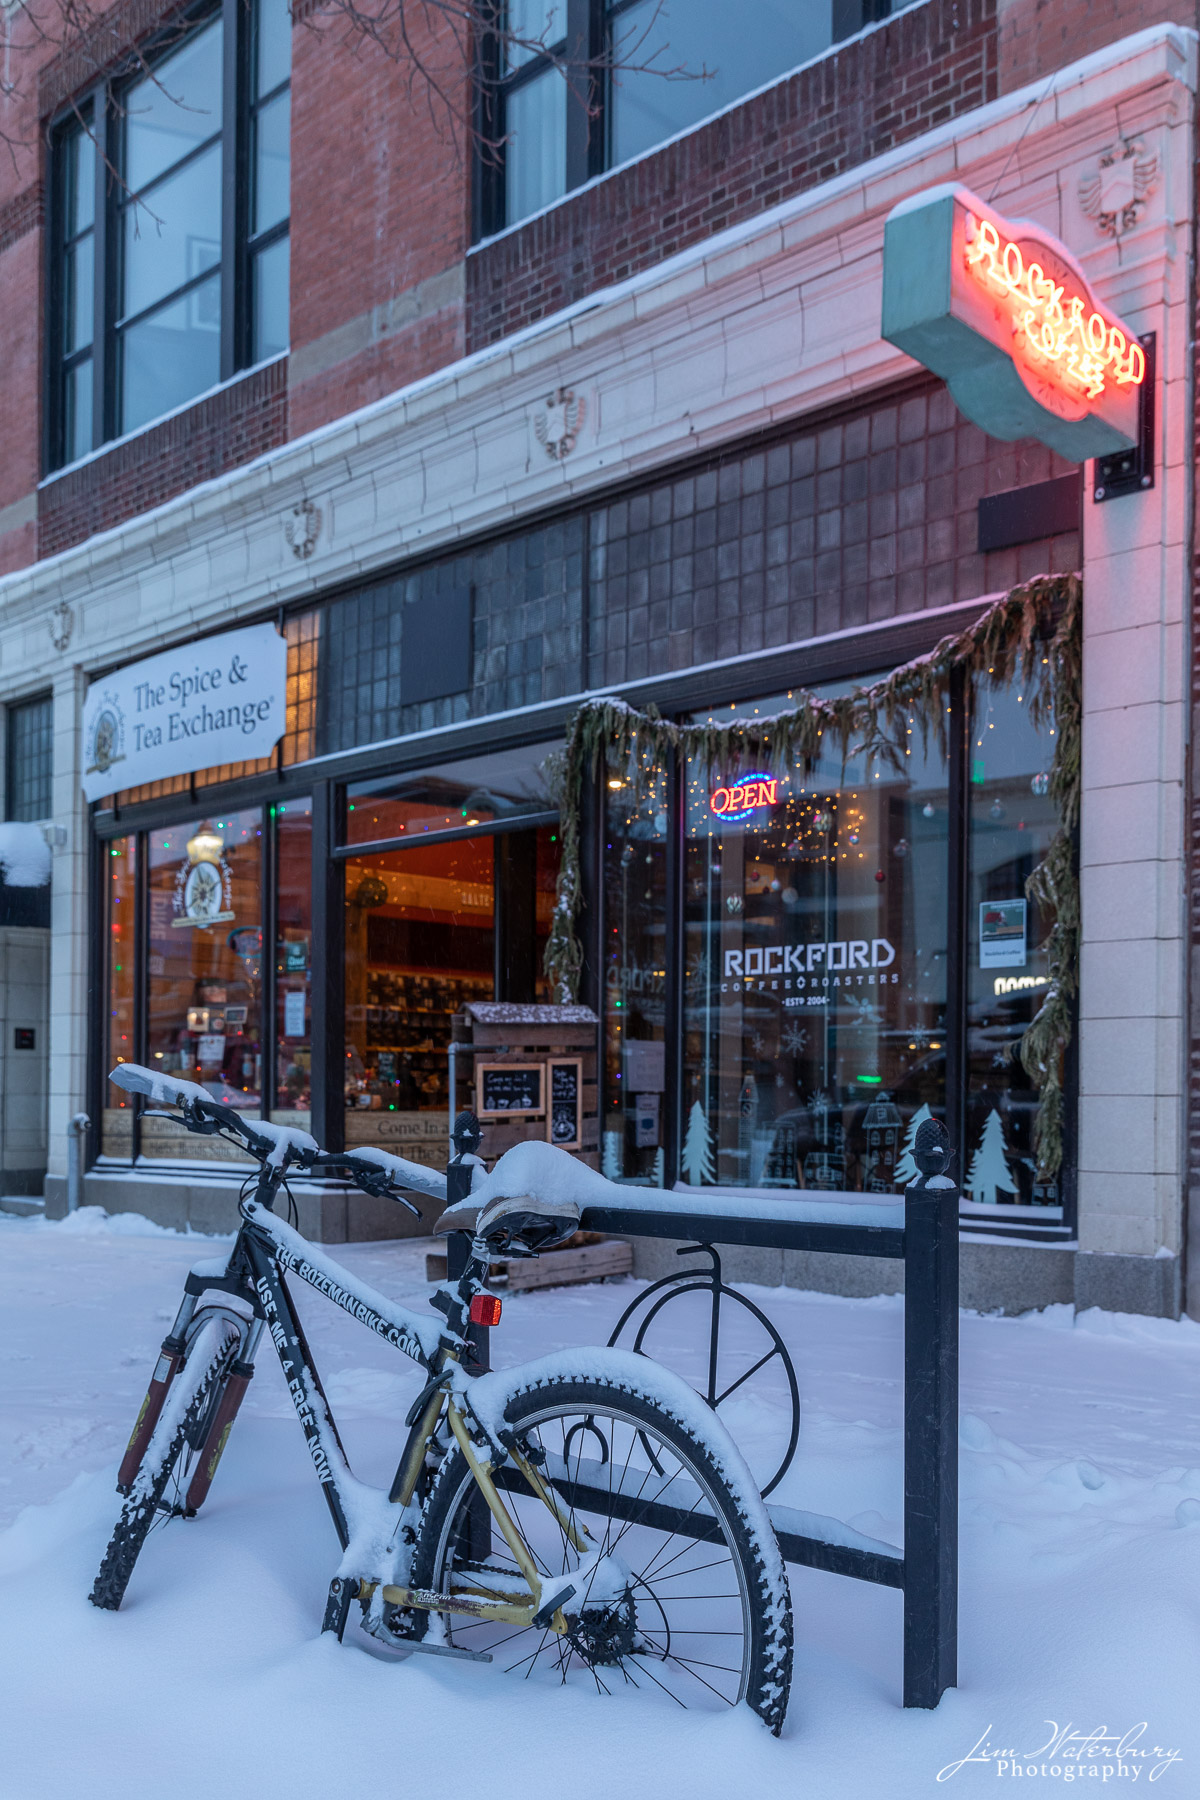 Early morning outside the Rockford Coffee shop, after an overnight snowfall in Bozeman.